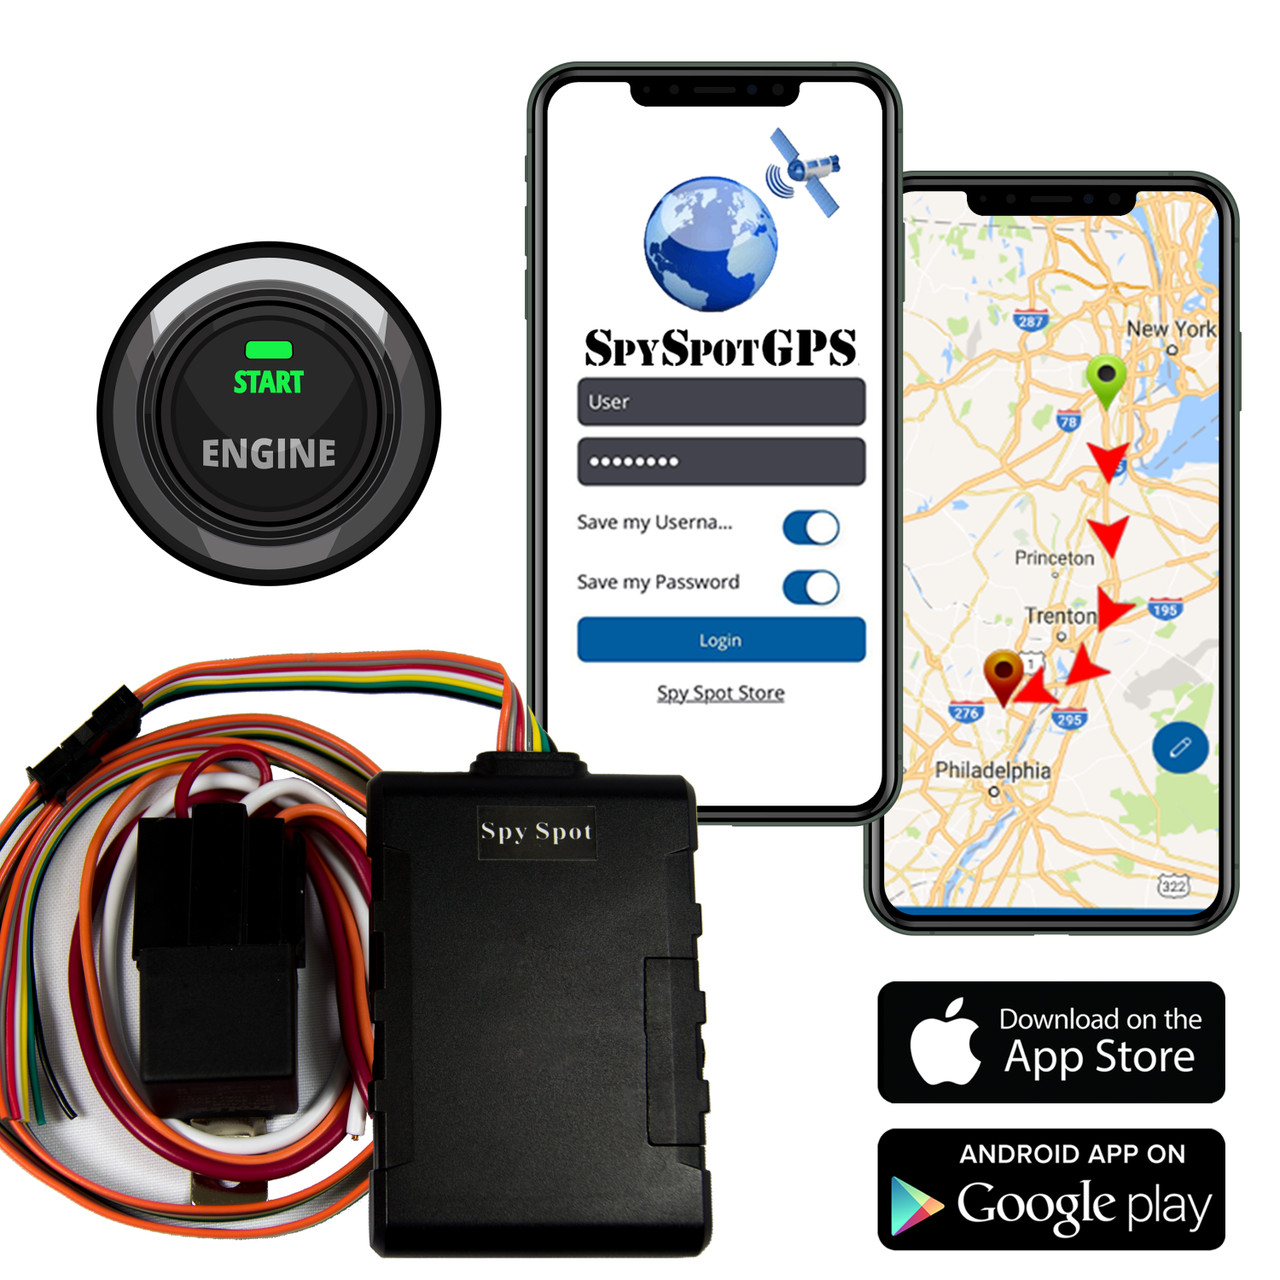 Disable Any Vehicle Ignition Remote Starter 4G Hard Wire Kill Switch GPS Vehicle Tracker Advance Satellite Real Time Fleet Tracking // Teen Driver Monitoring Alerts by Spy Spot